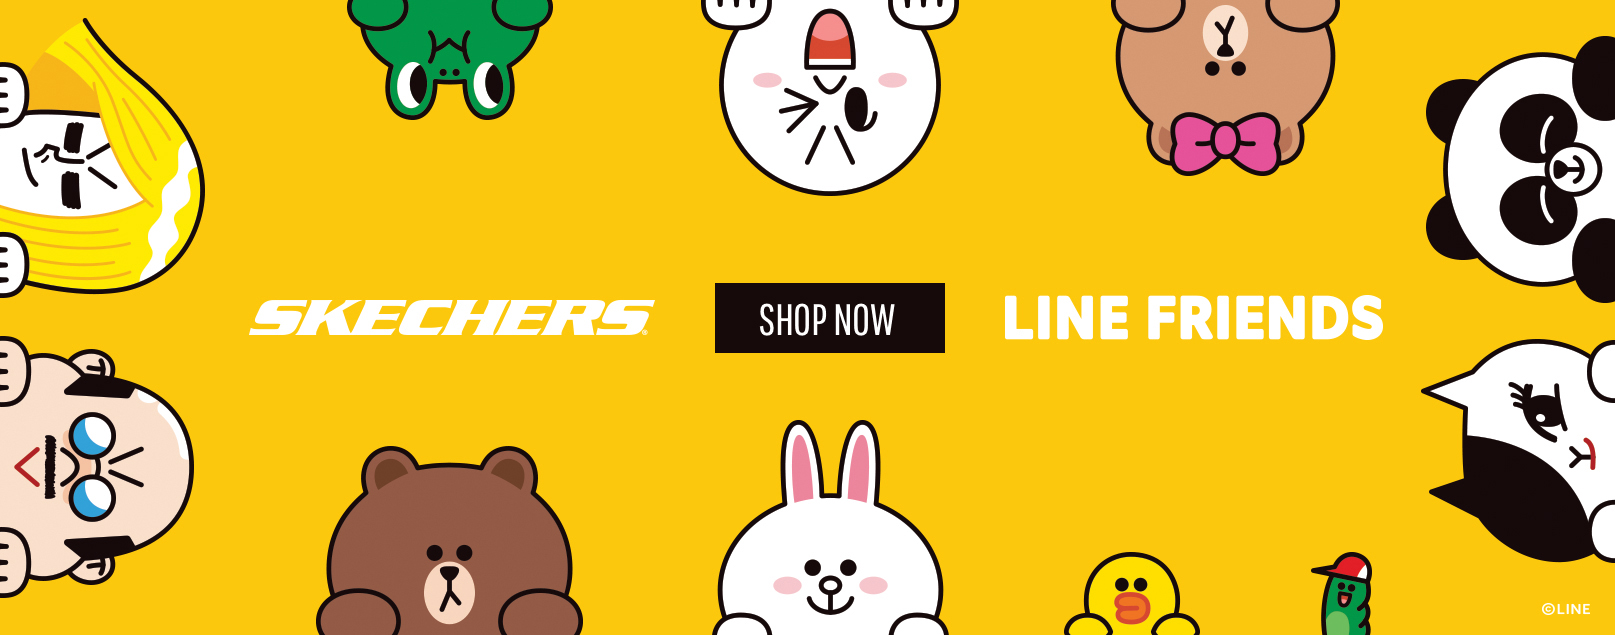 Discover a world of adorable friendship with the Line Friends x Skechers collection!  Fun shoes and sneakers featuring Brown, Choco, Cony, Sally and more super-kawaii Line Friends characters.